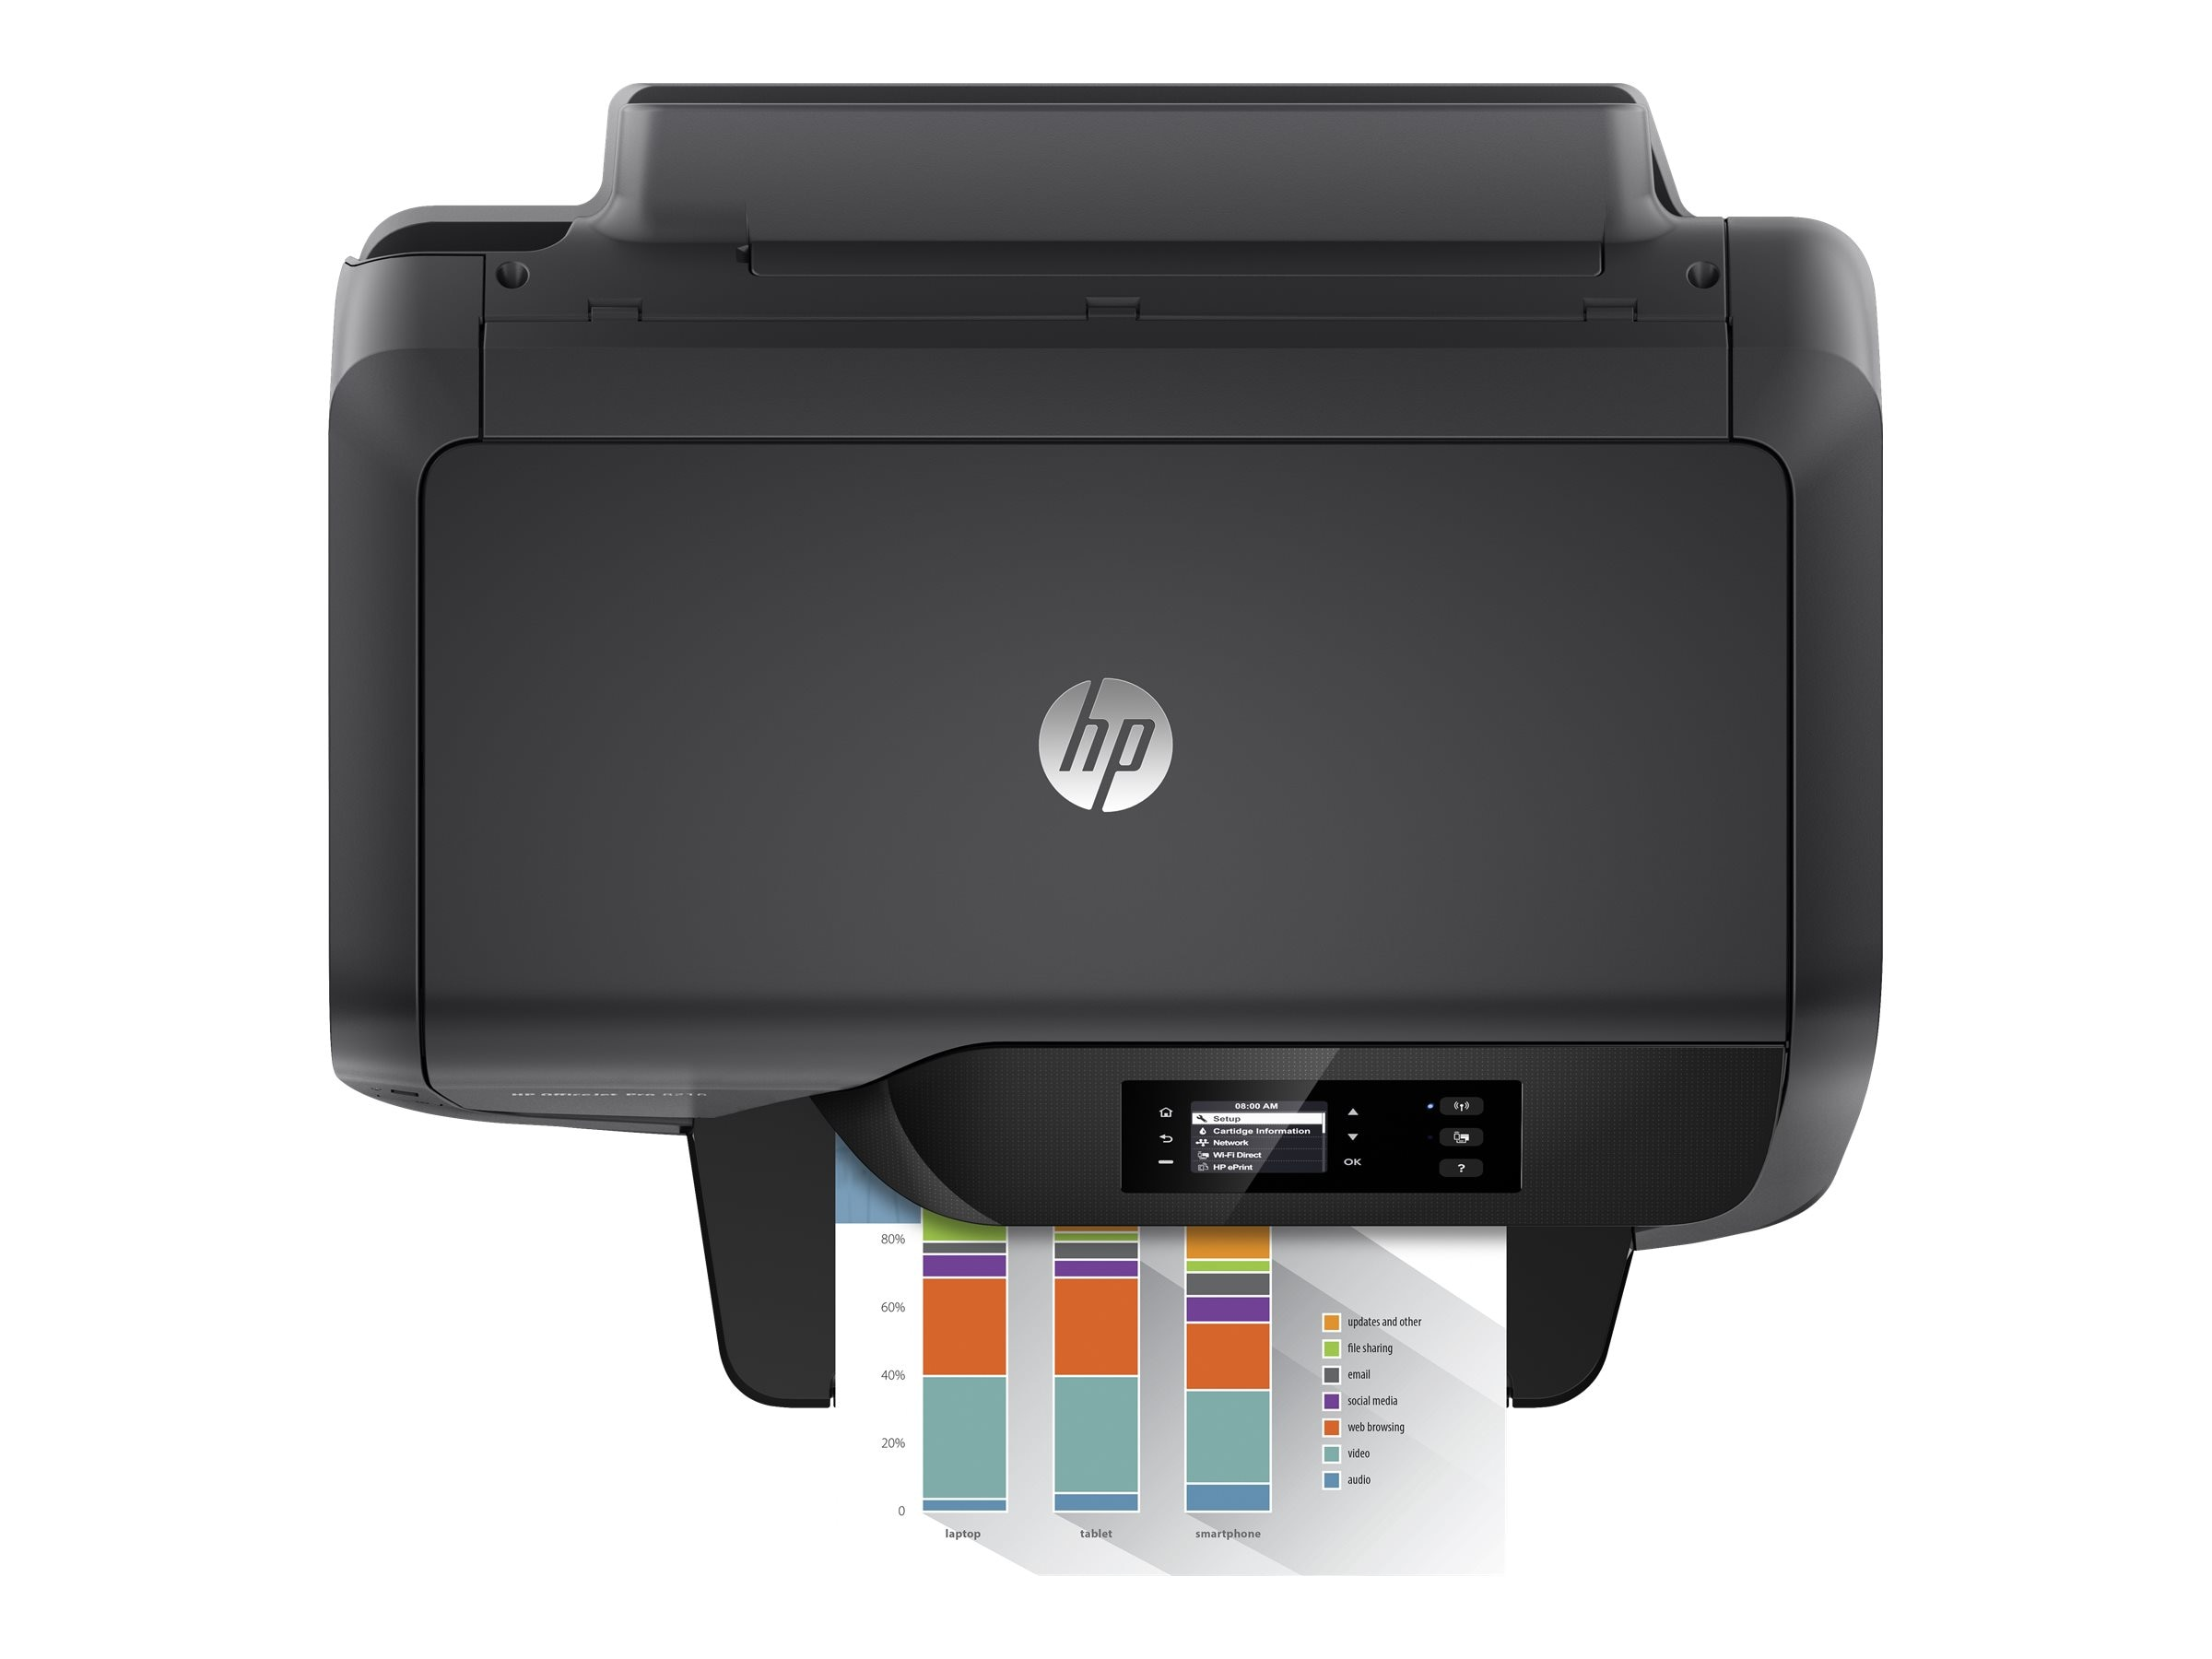 HP OfficeJet Pro 8216 Printer, T0G70A#B1H